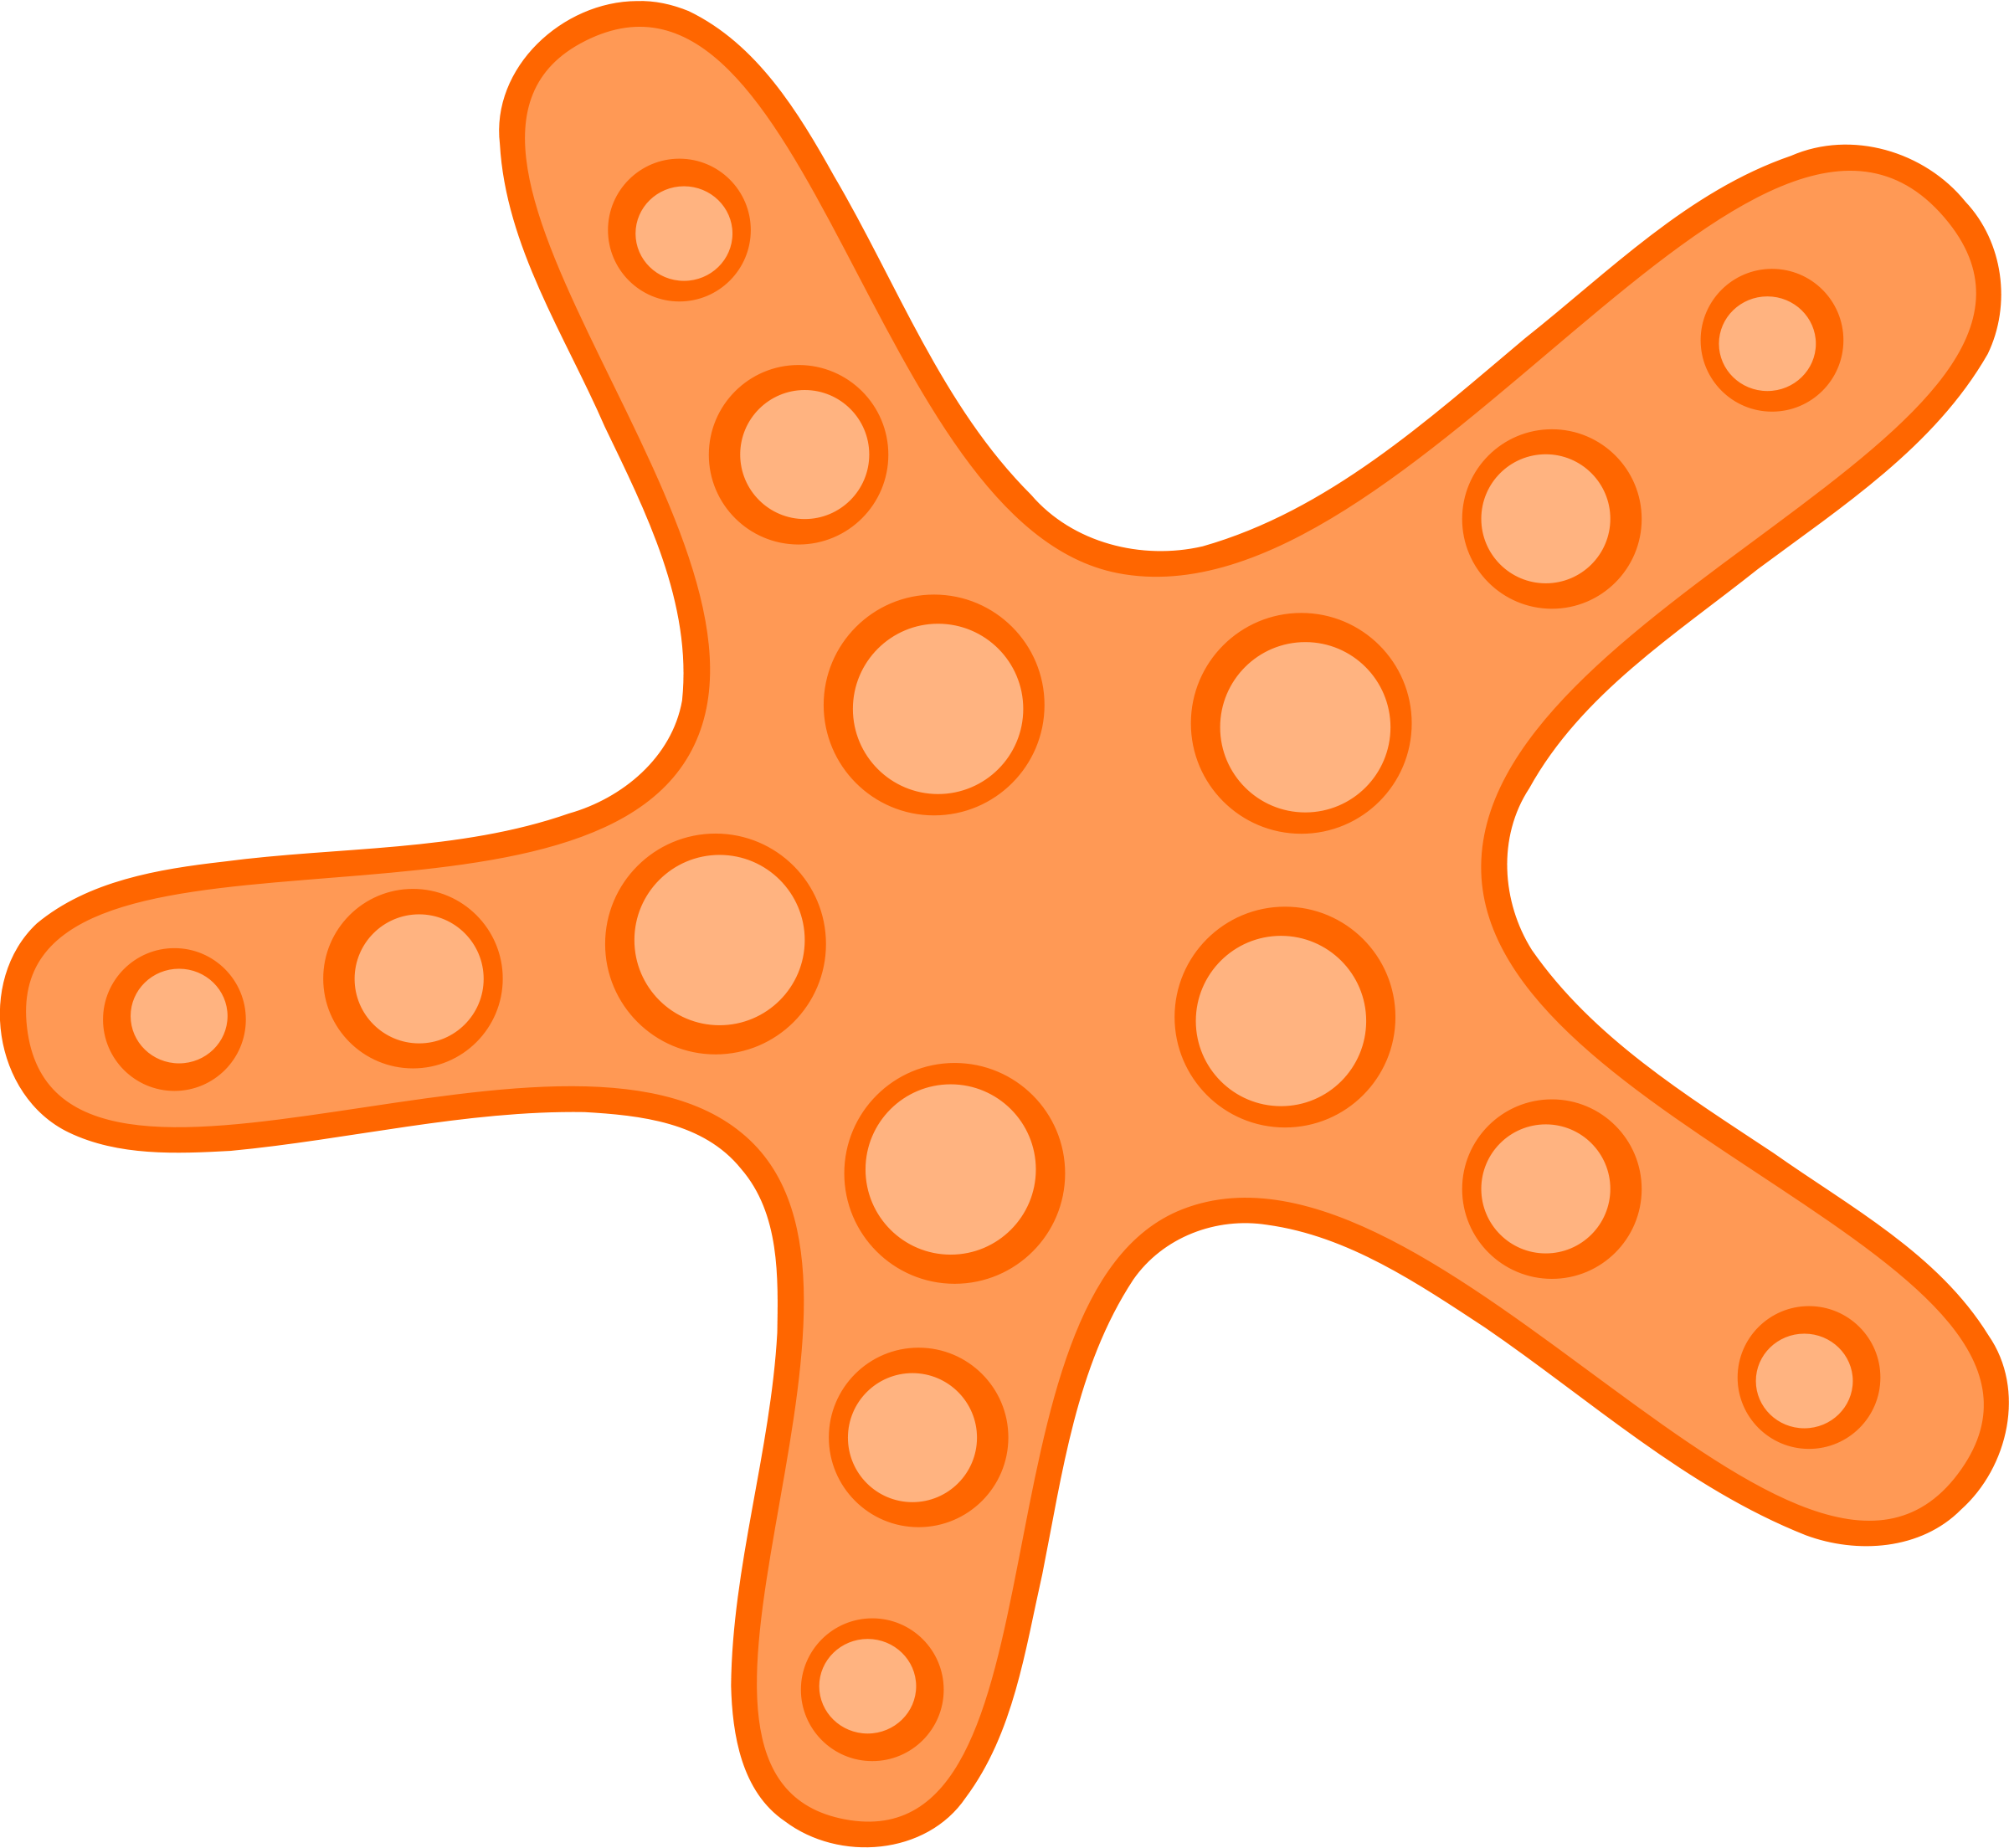 Free Download Starfish Png Images image #19852